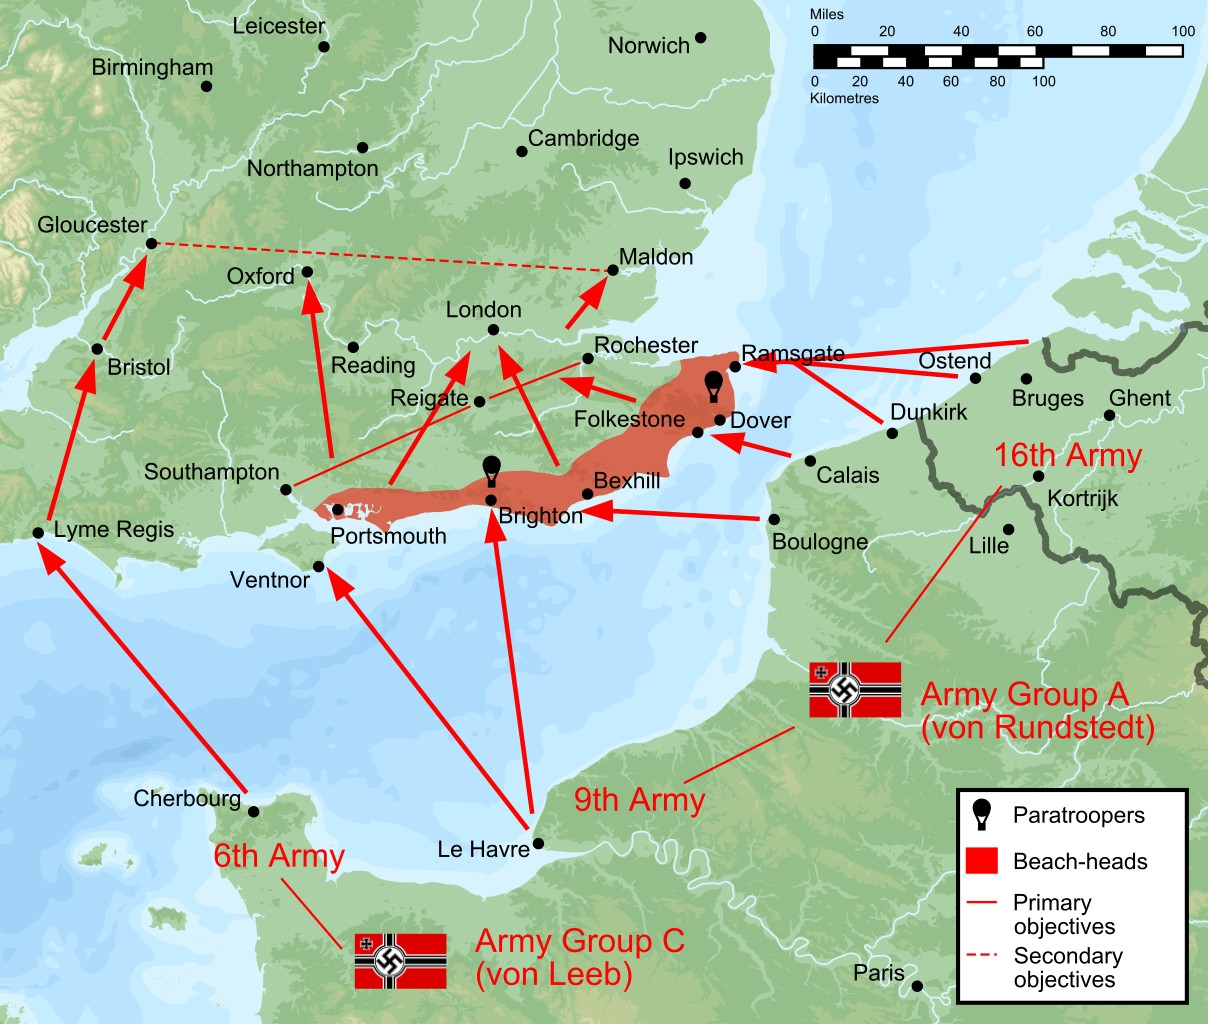 42 Maps That Explain World War Ii - Vox intended for Map Of German Occupied Europe During Ww2